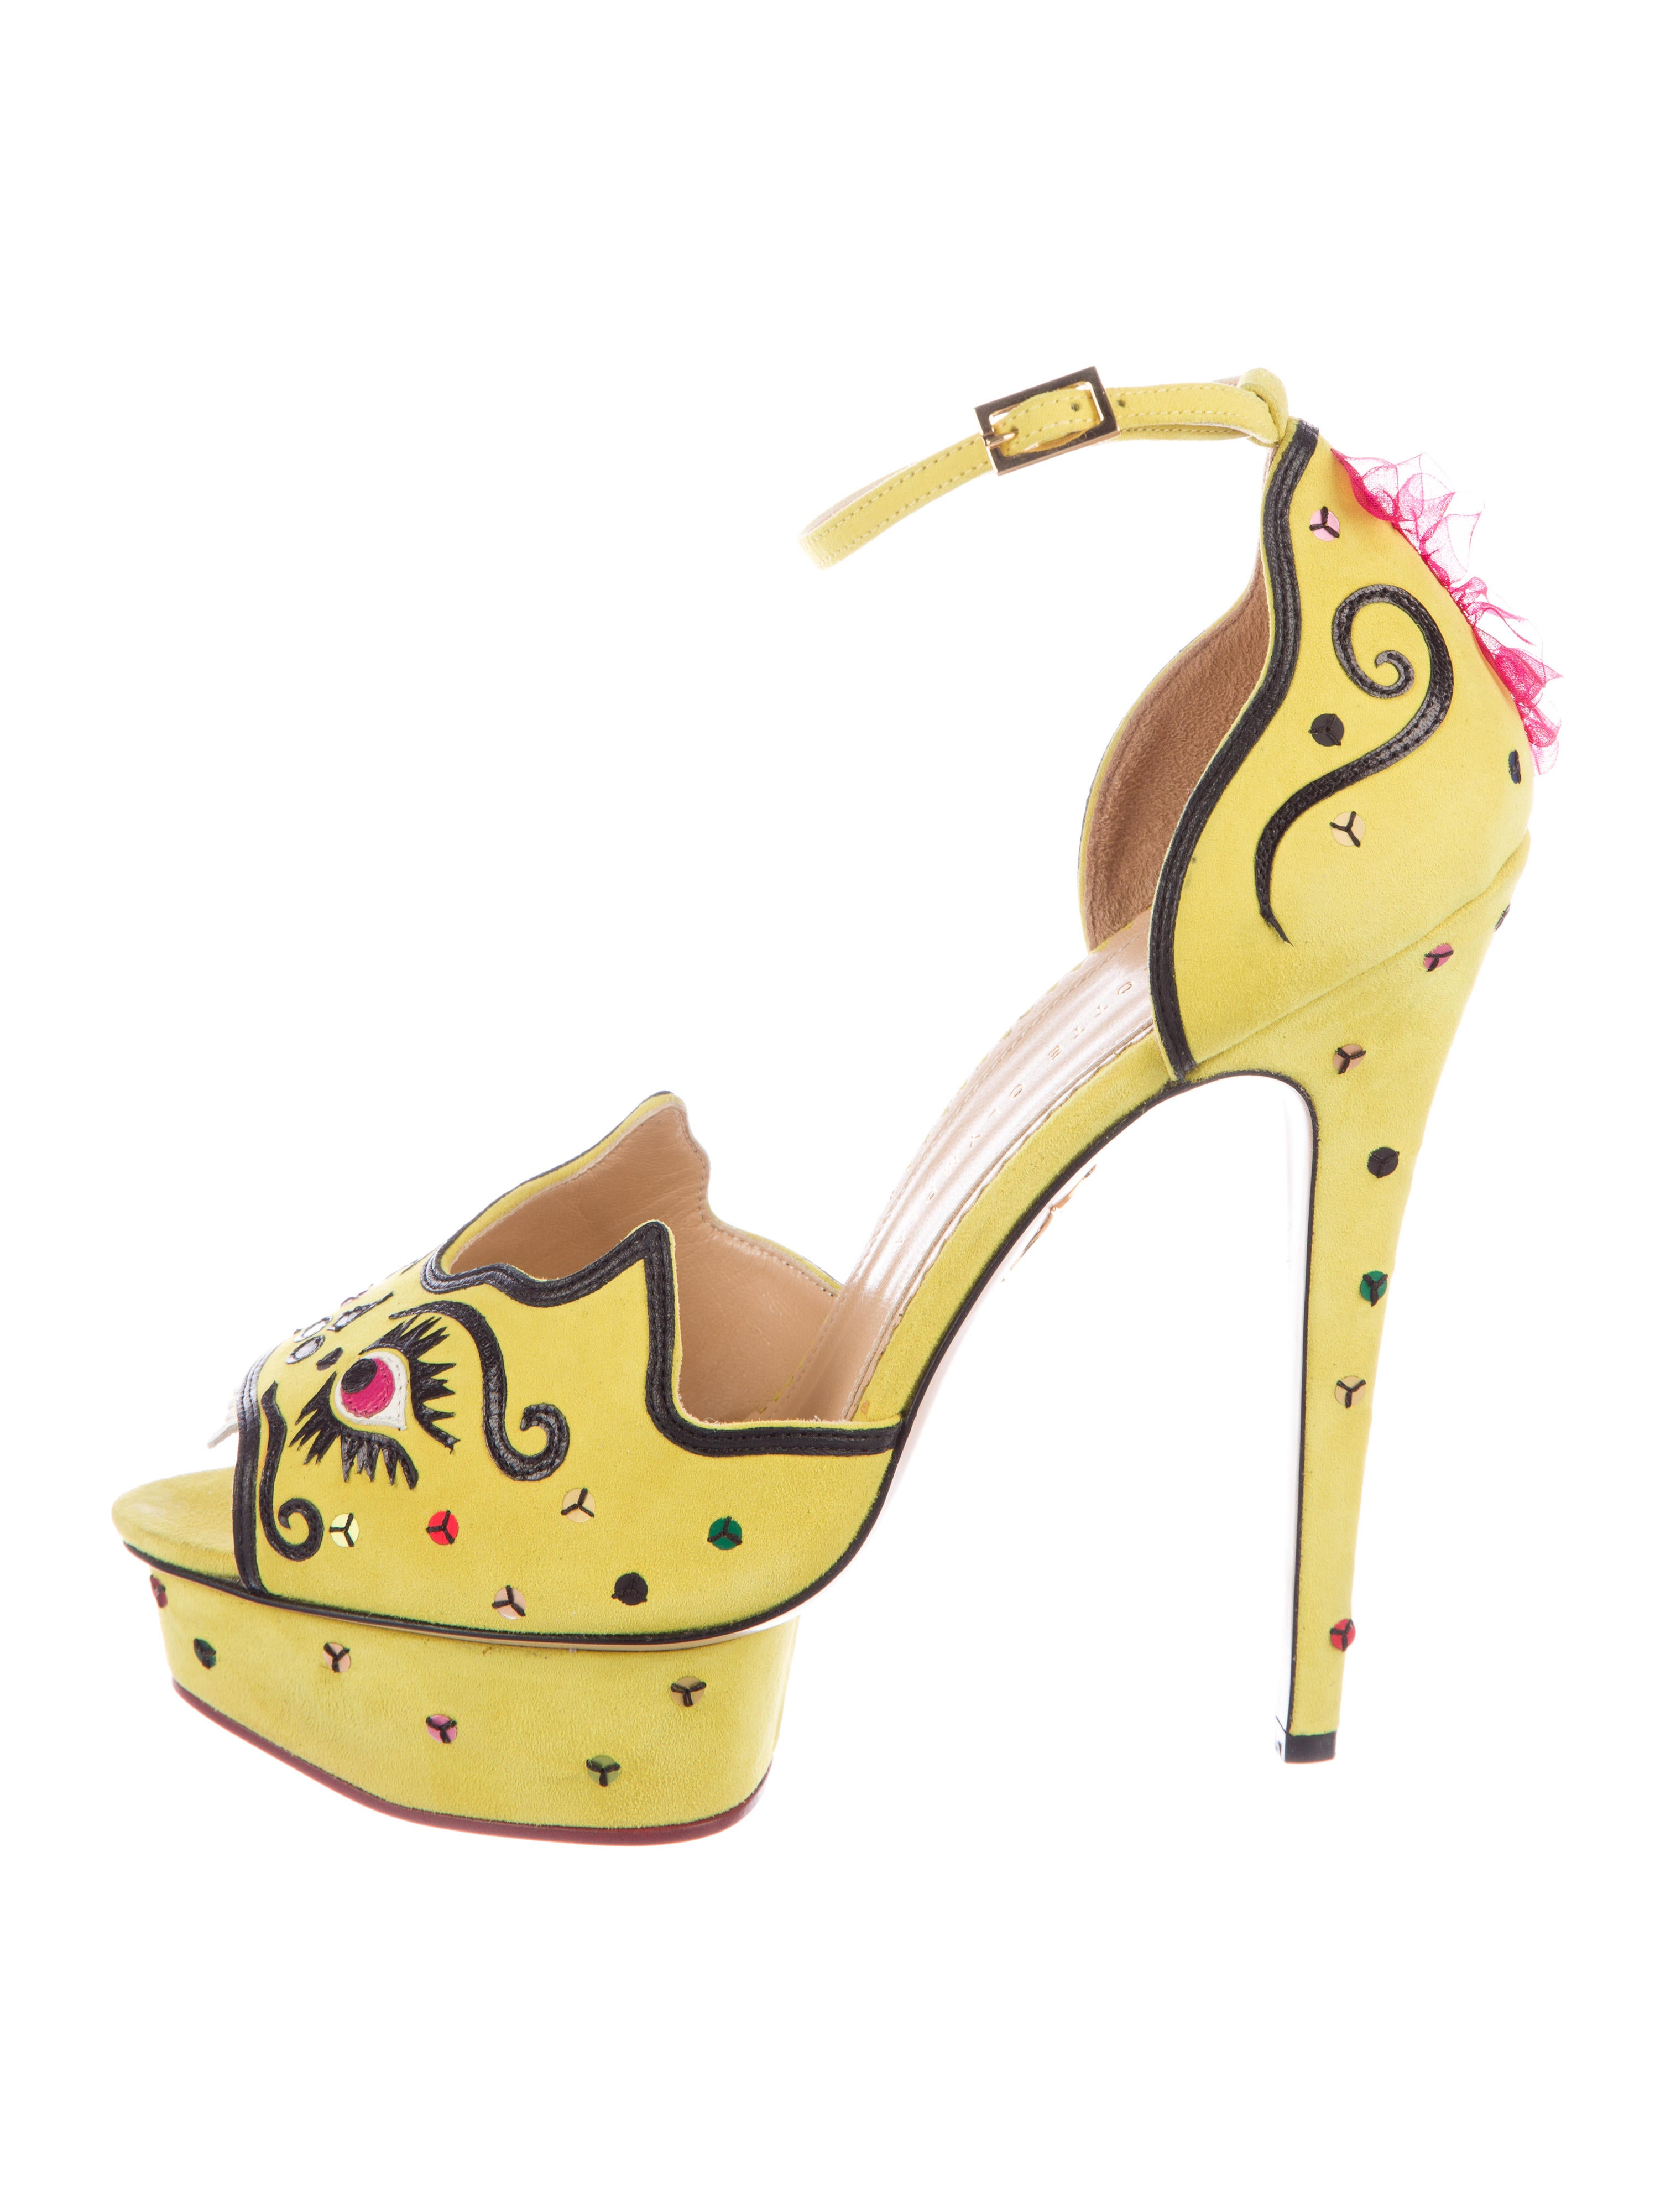 comfortable for sale discount free shipping Charlotte Olympia Martia Dragon Suede Pumps cheap sale genuine free shipping popular FqLl0loxcq